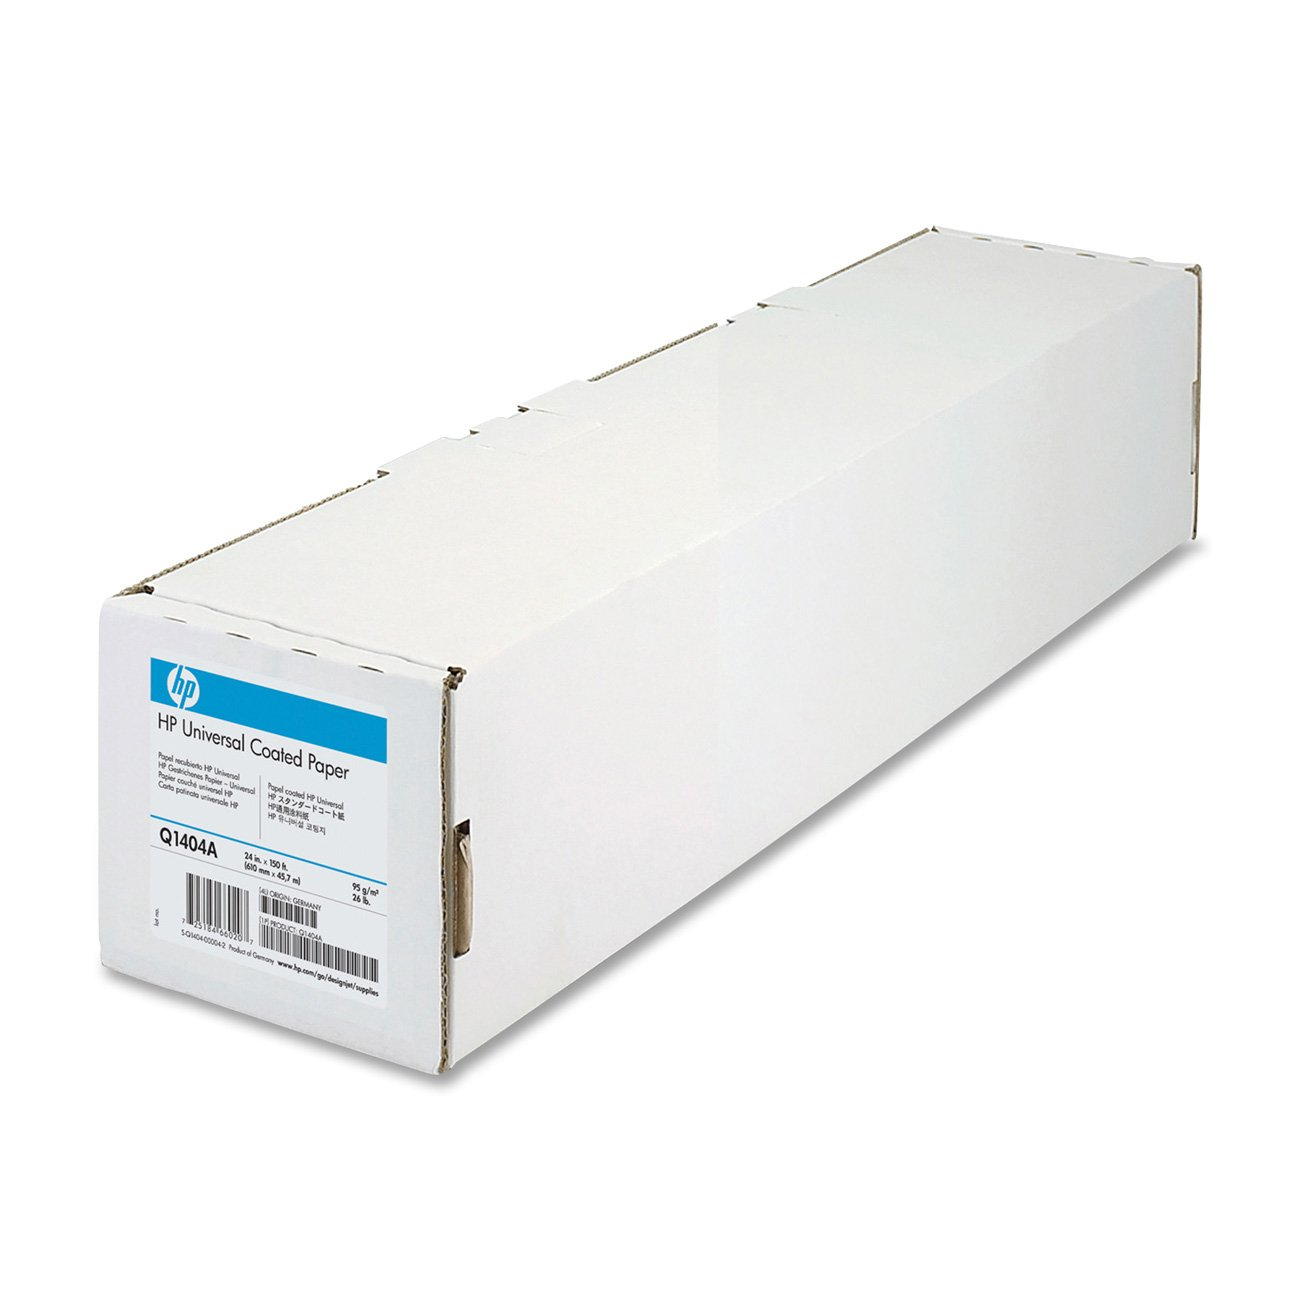 HP Universal Coated Paper (24 Inches x 150 Feet Roll) by Hewlett Packard